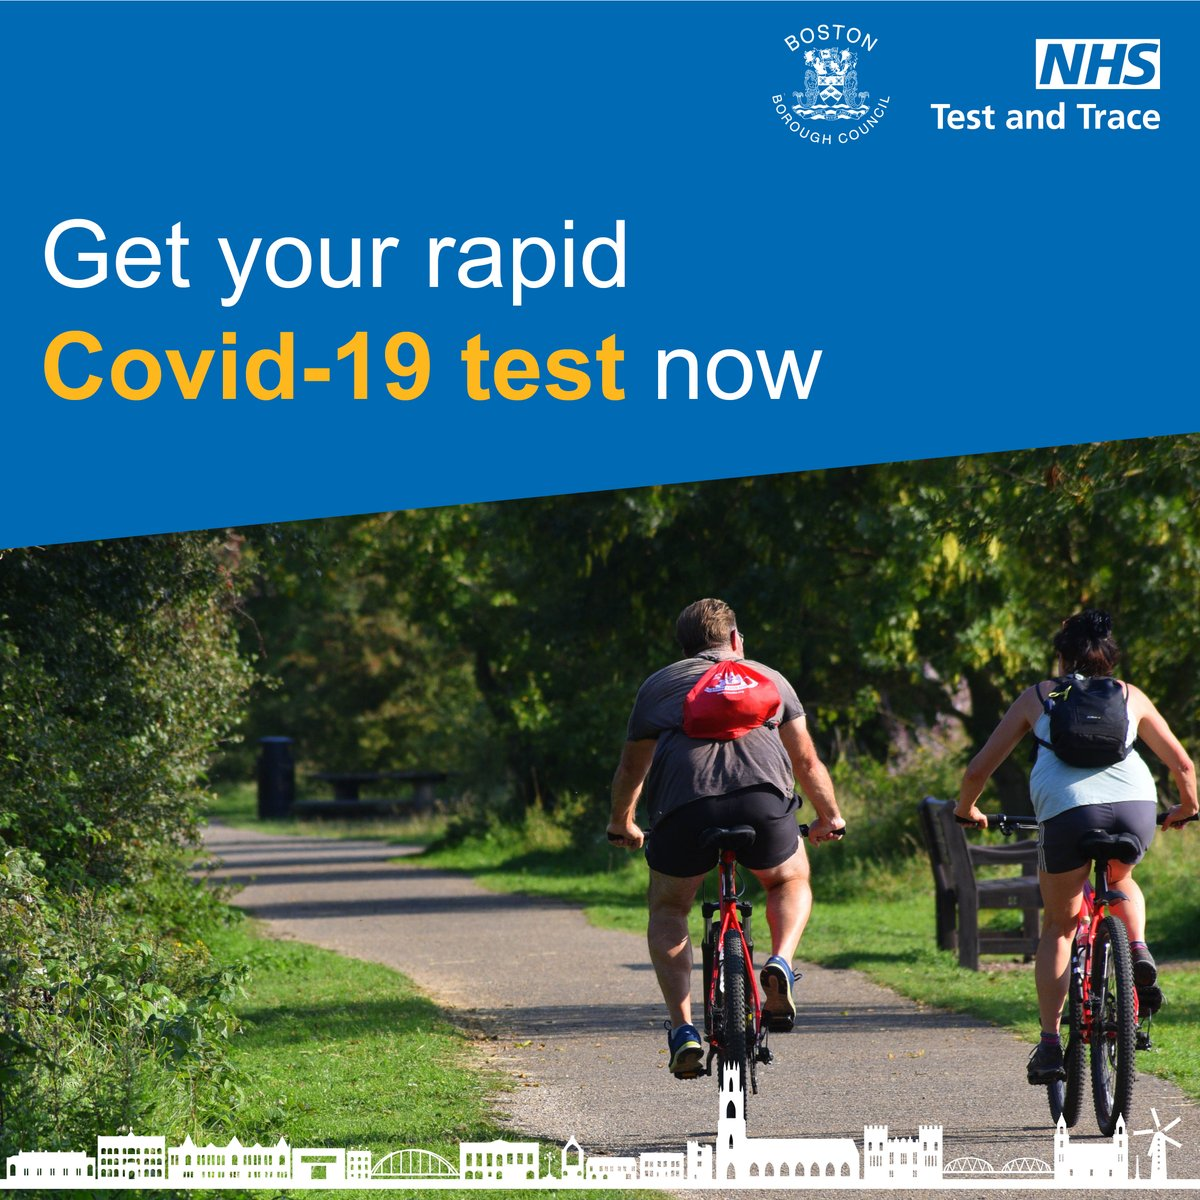 The community 'rapid' testing sites at Peter Paine and Tollfield Campus both open at 8am every morning. You can attend these site for testing if you are not showing Covid-19 symptoms.  No appointments are needed, just pop along and take a test to #ProtectBoston #LetsGetTested